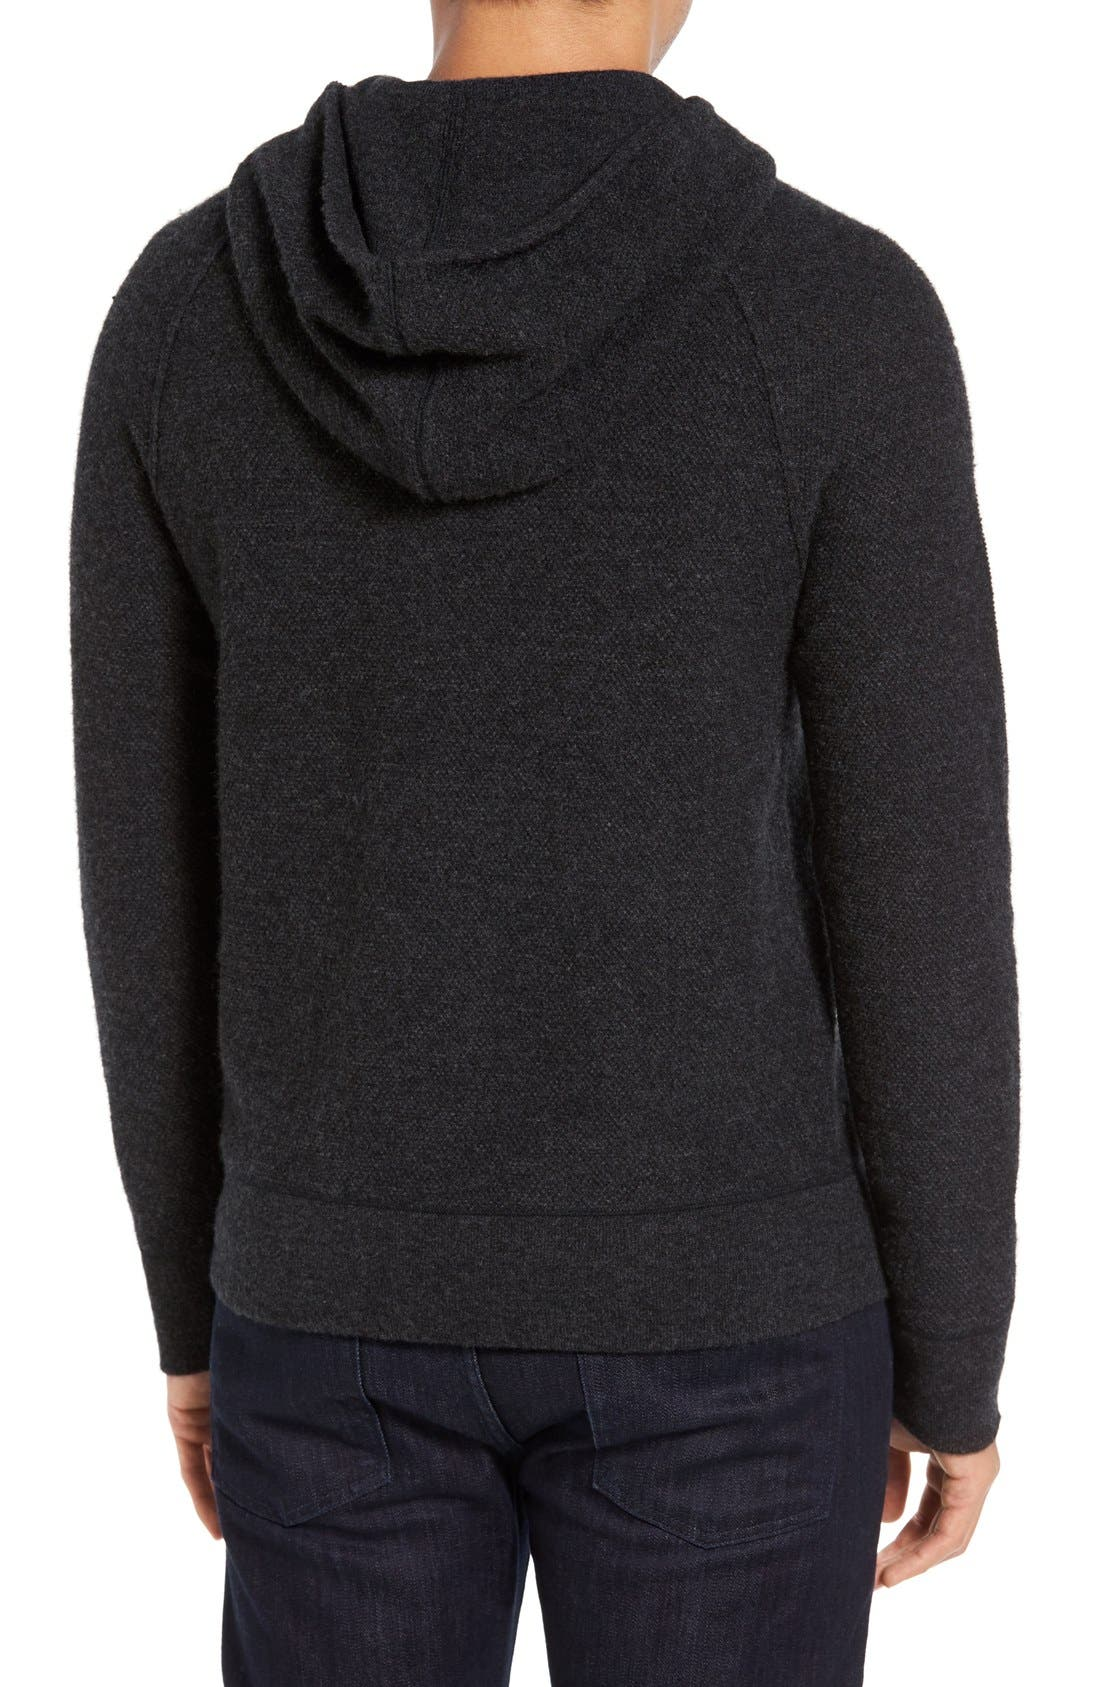 JAMES PERSE,                             Cashmere Hoodie,                             Alternate thumbnail 3, color,                             052